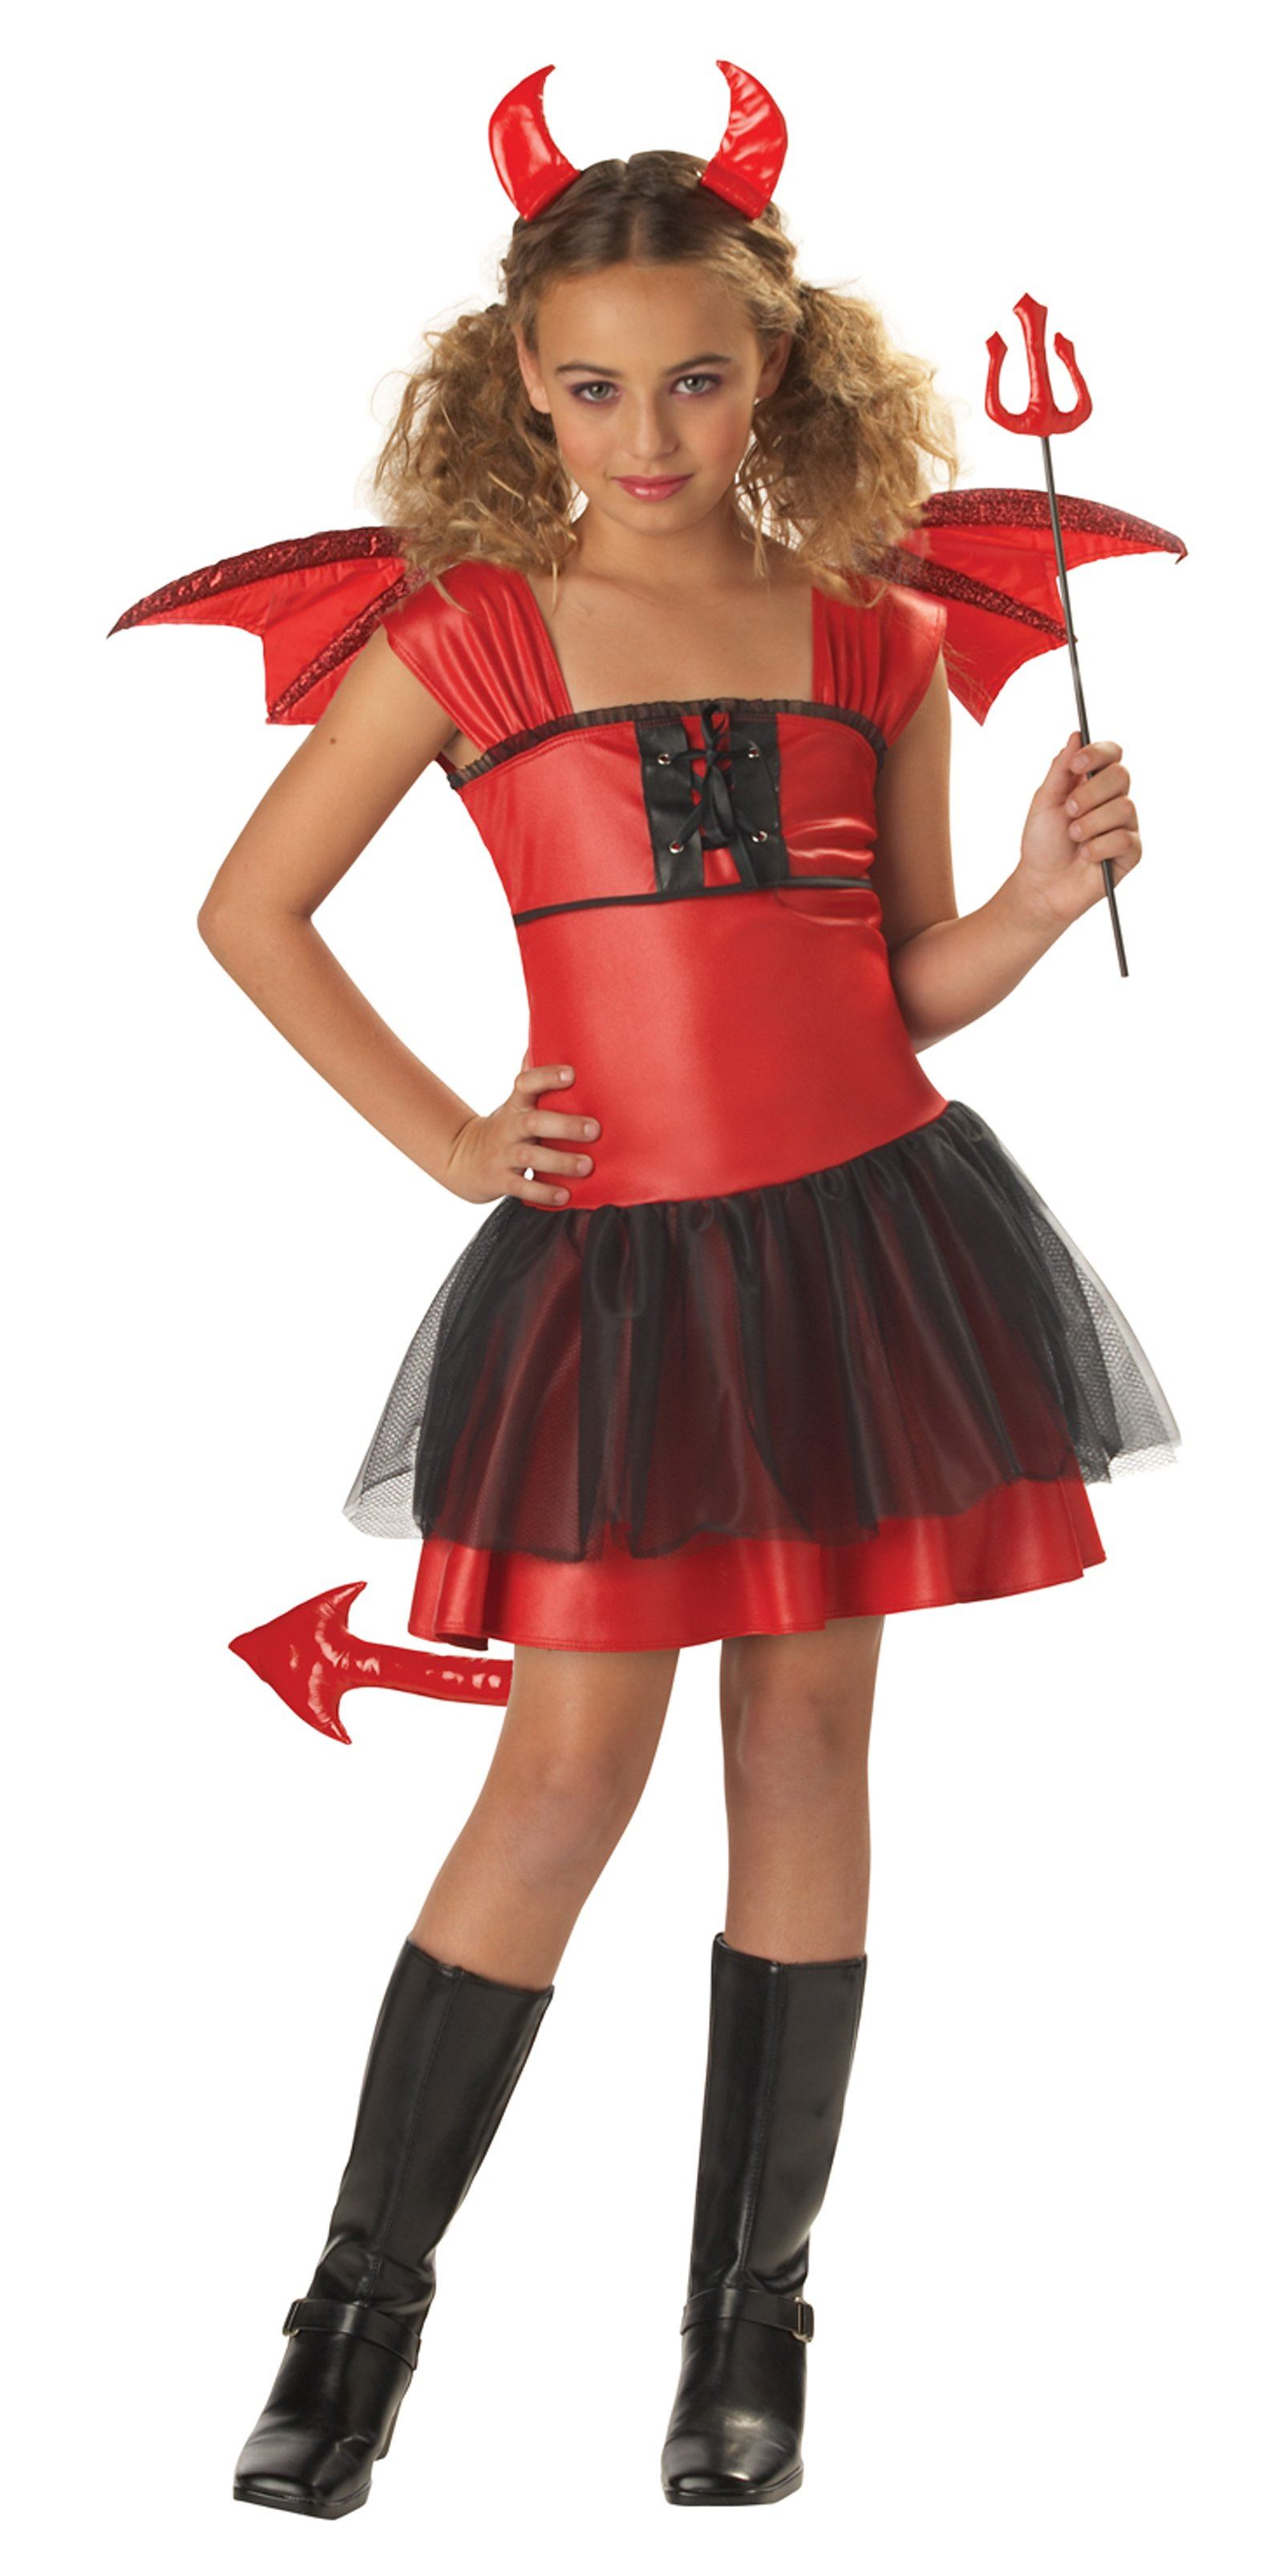 Kids Halloween Costumes Pictures Darling Girl Kids Costume